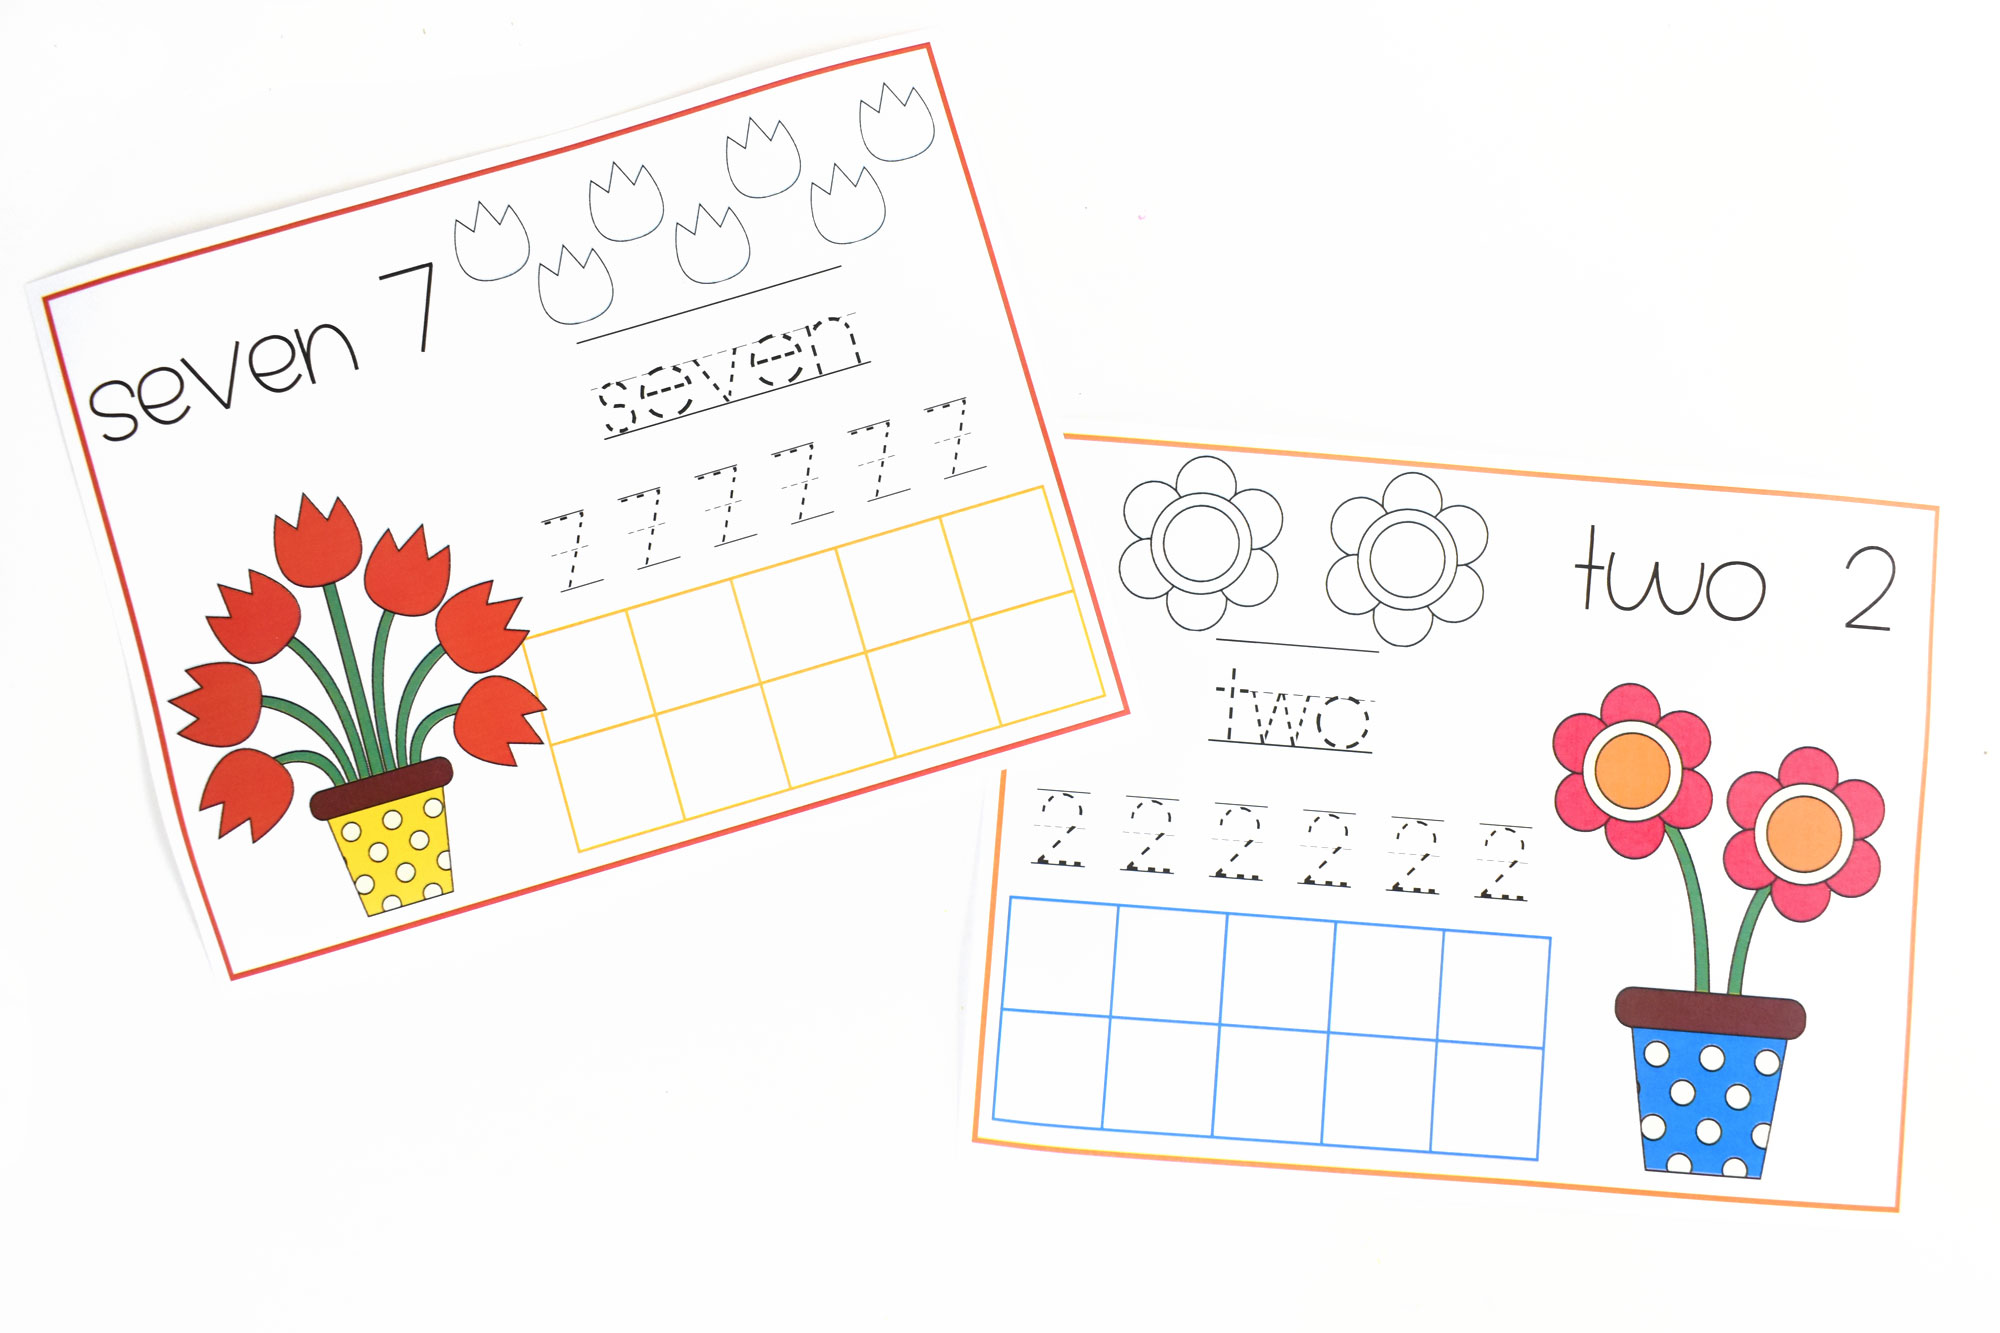 Spring Counting Flowers Printable Pages for Kids | HolidayPrintables.net #printables #holidayprintables #springpritnables #countingpages #math #preschoolprintables #educationprintables #homeschoolprintables #weloveprintables